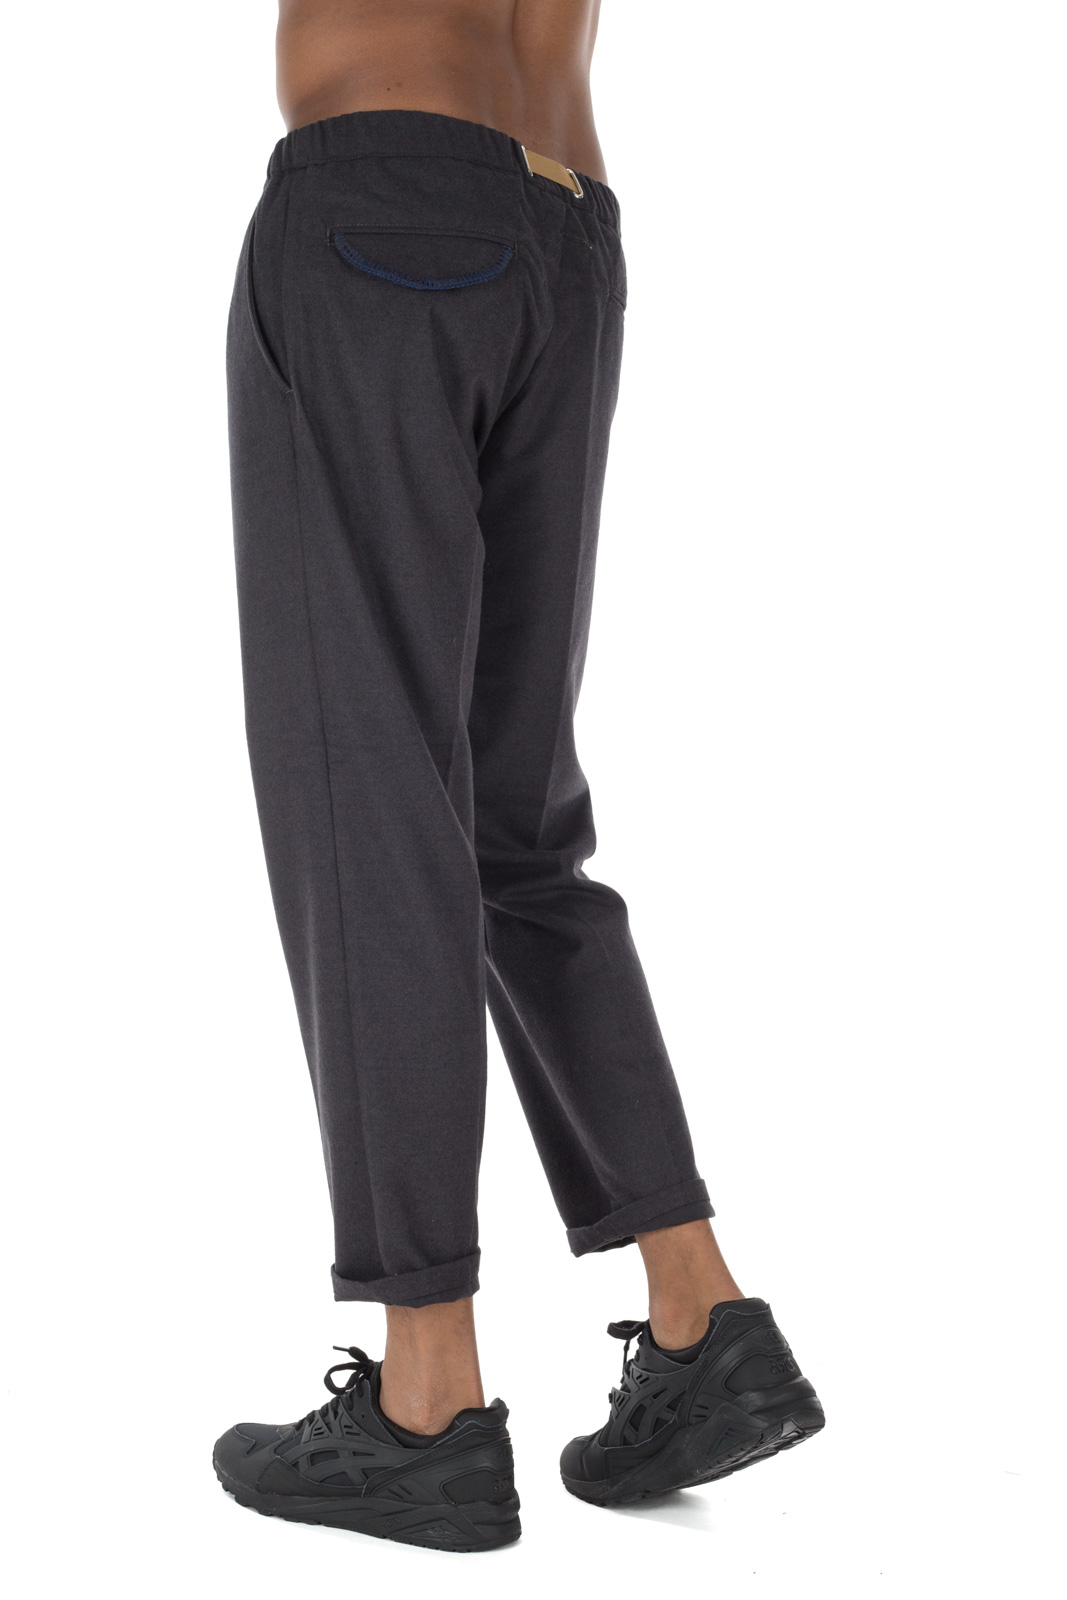 White Sand - Chino Dark Gray Trousers